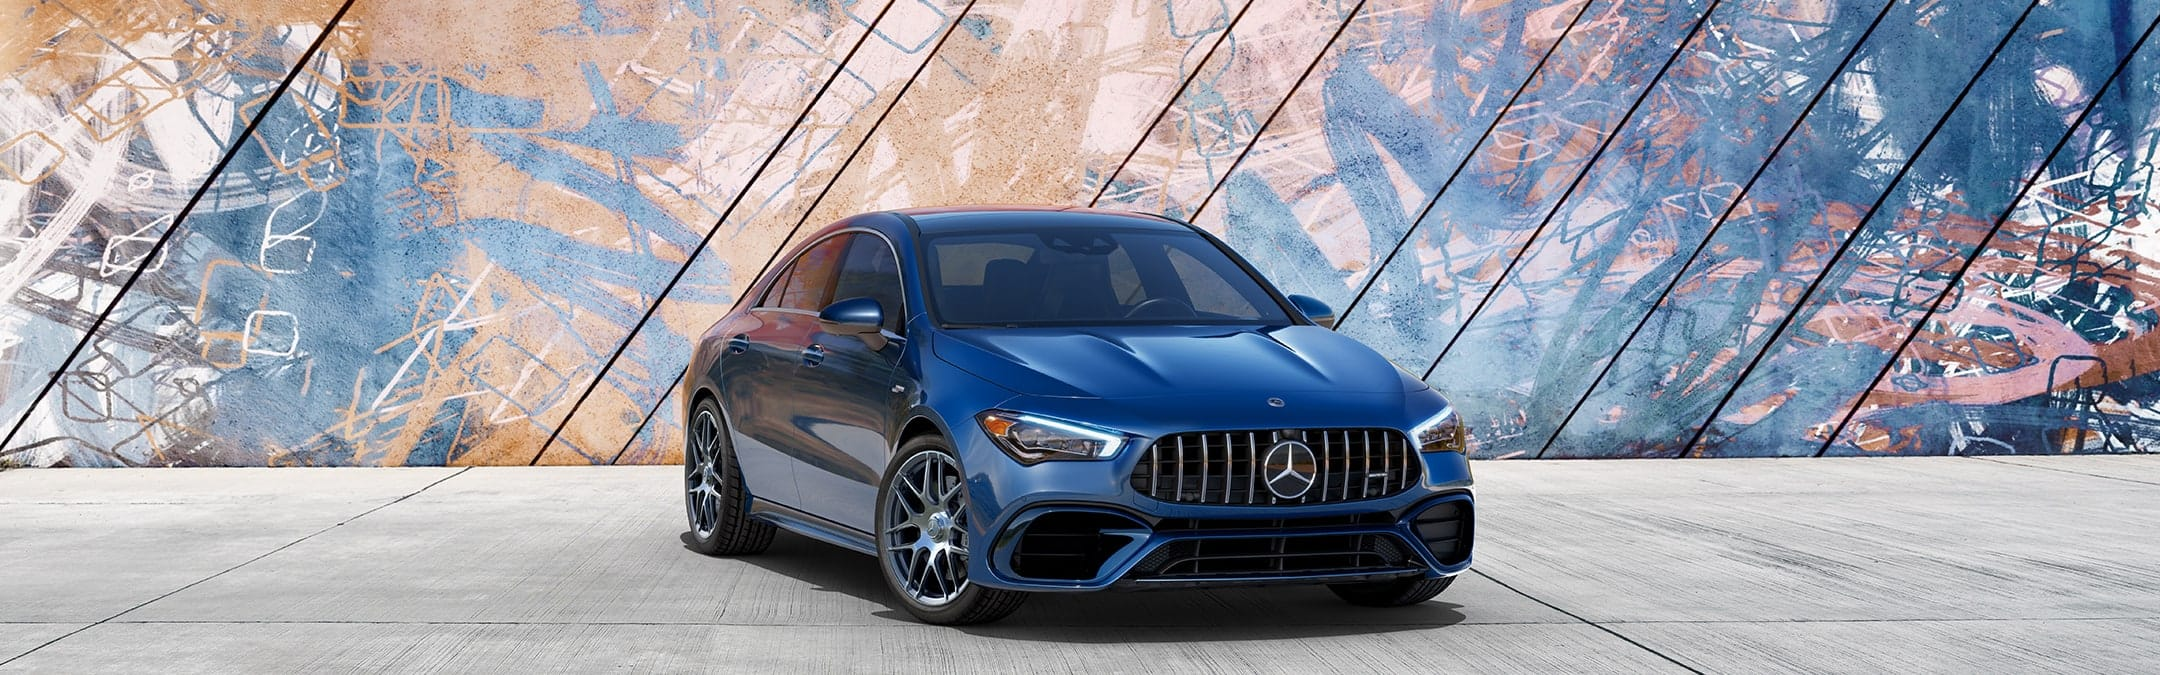 2020 Mercedes-AMG CLA Coupe